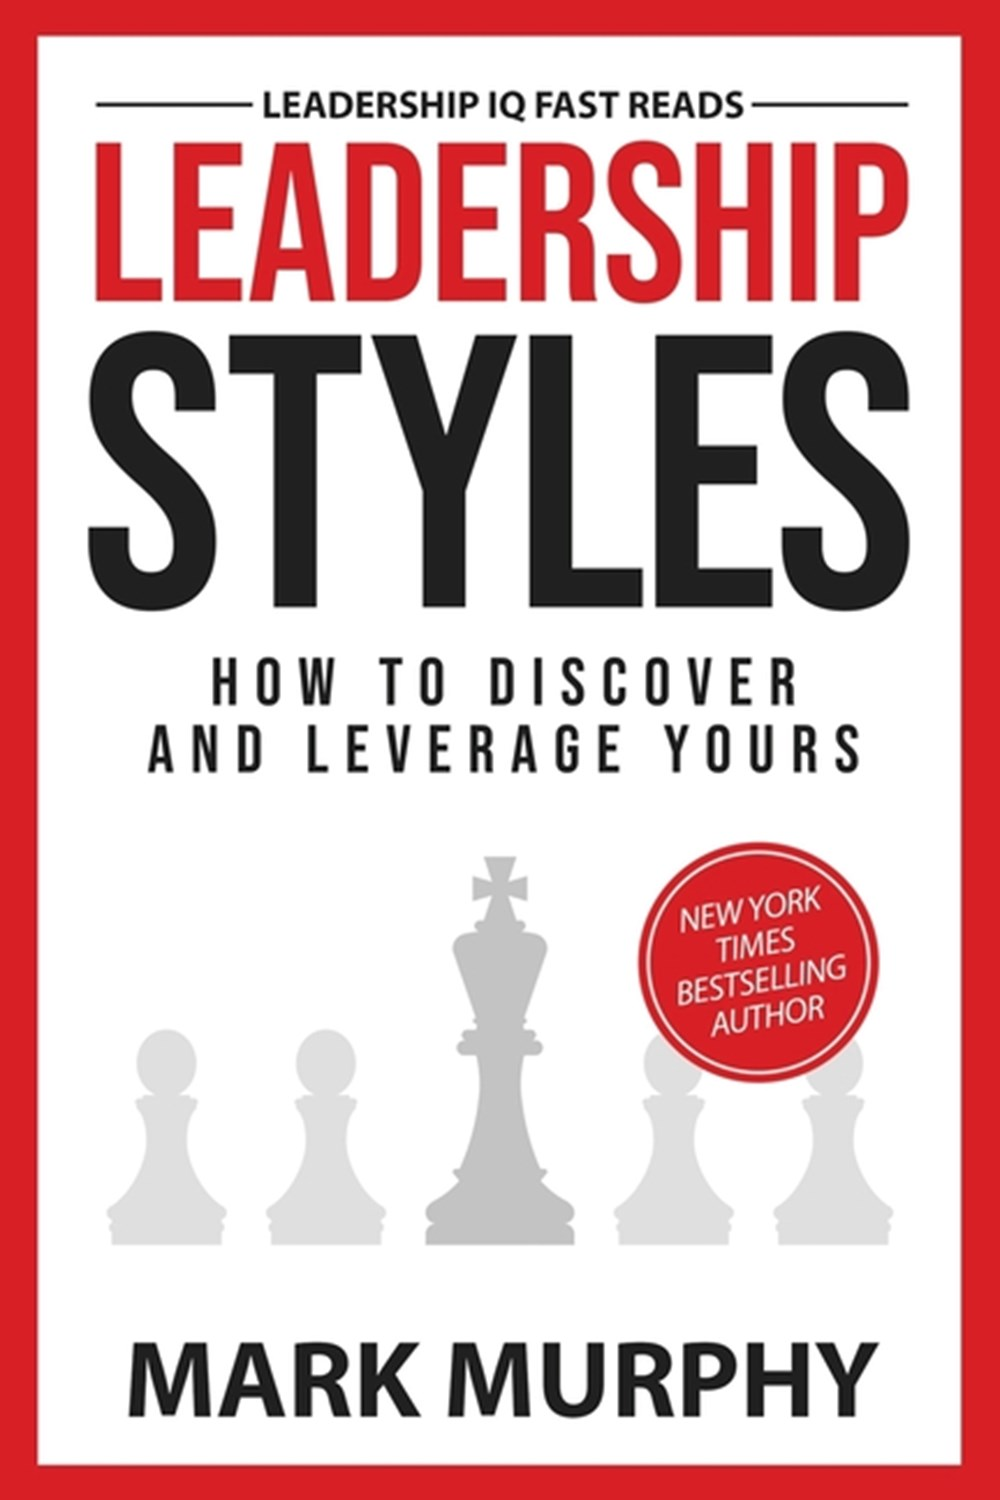 Leadership Styles How To Discover And Leverage Yours